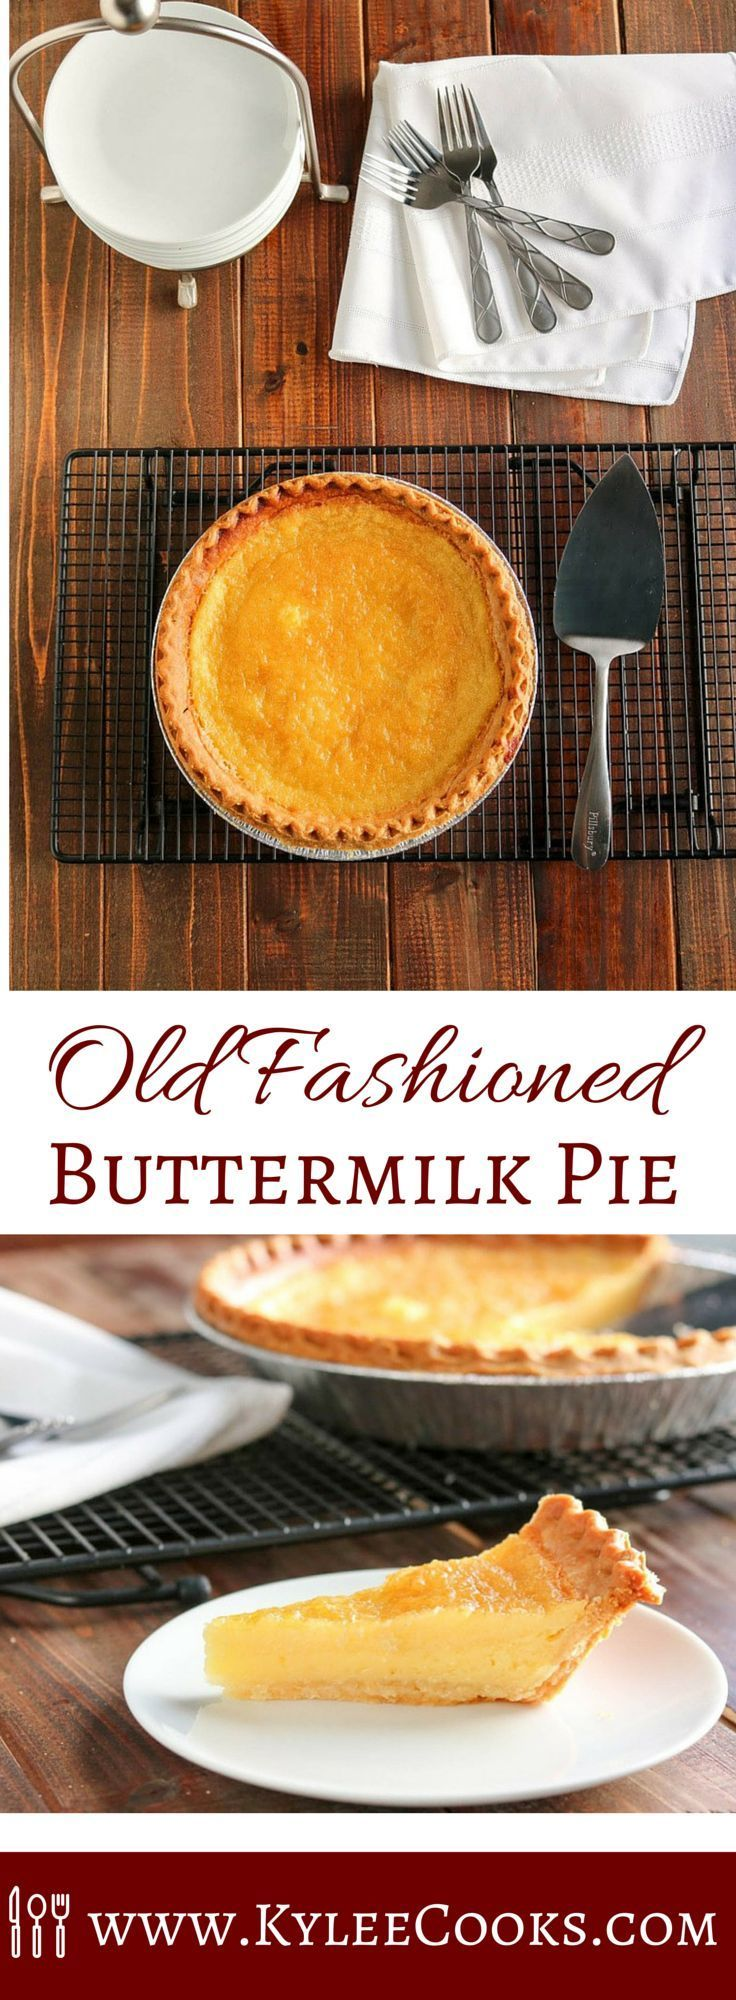 Just like your grandmother or great Aunt Millie used to make, this traditionally southern buttermilk pie is simple to make and pleases the whole family. And also impresses coworkers.